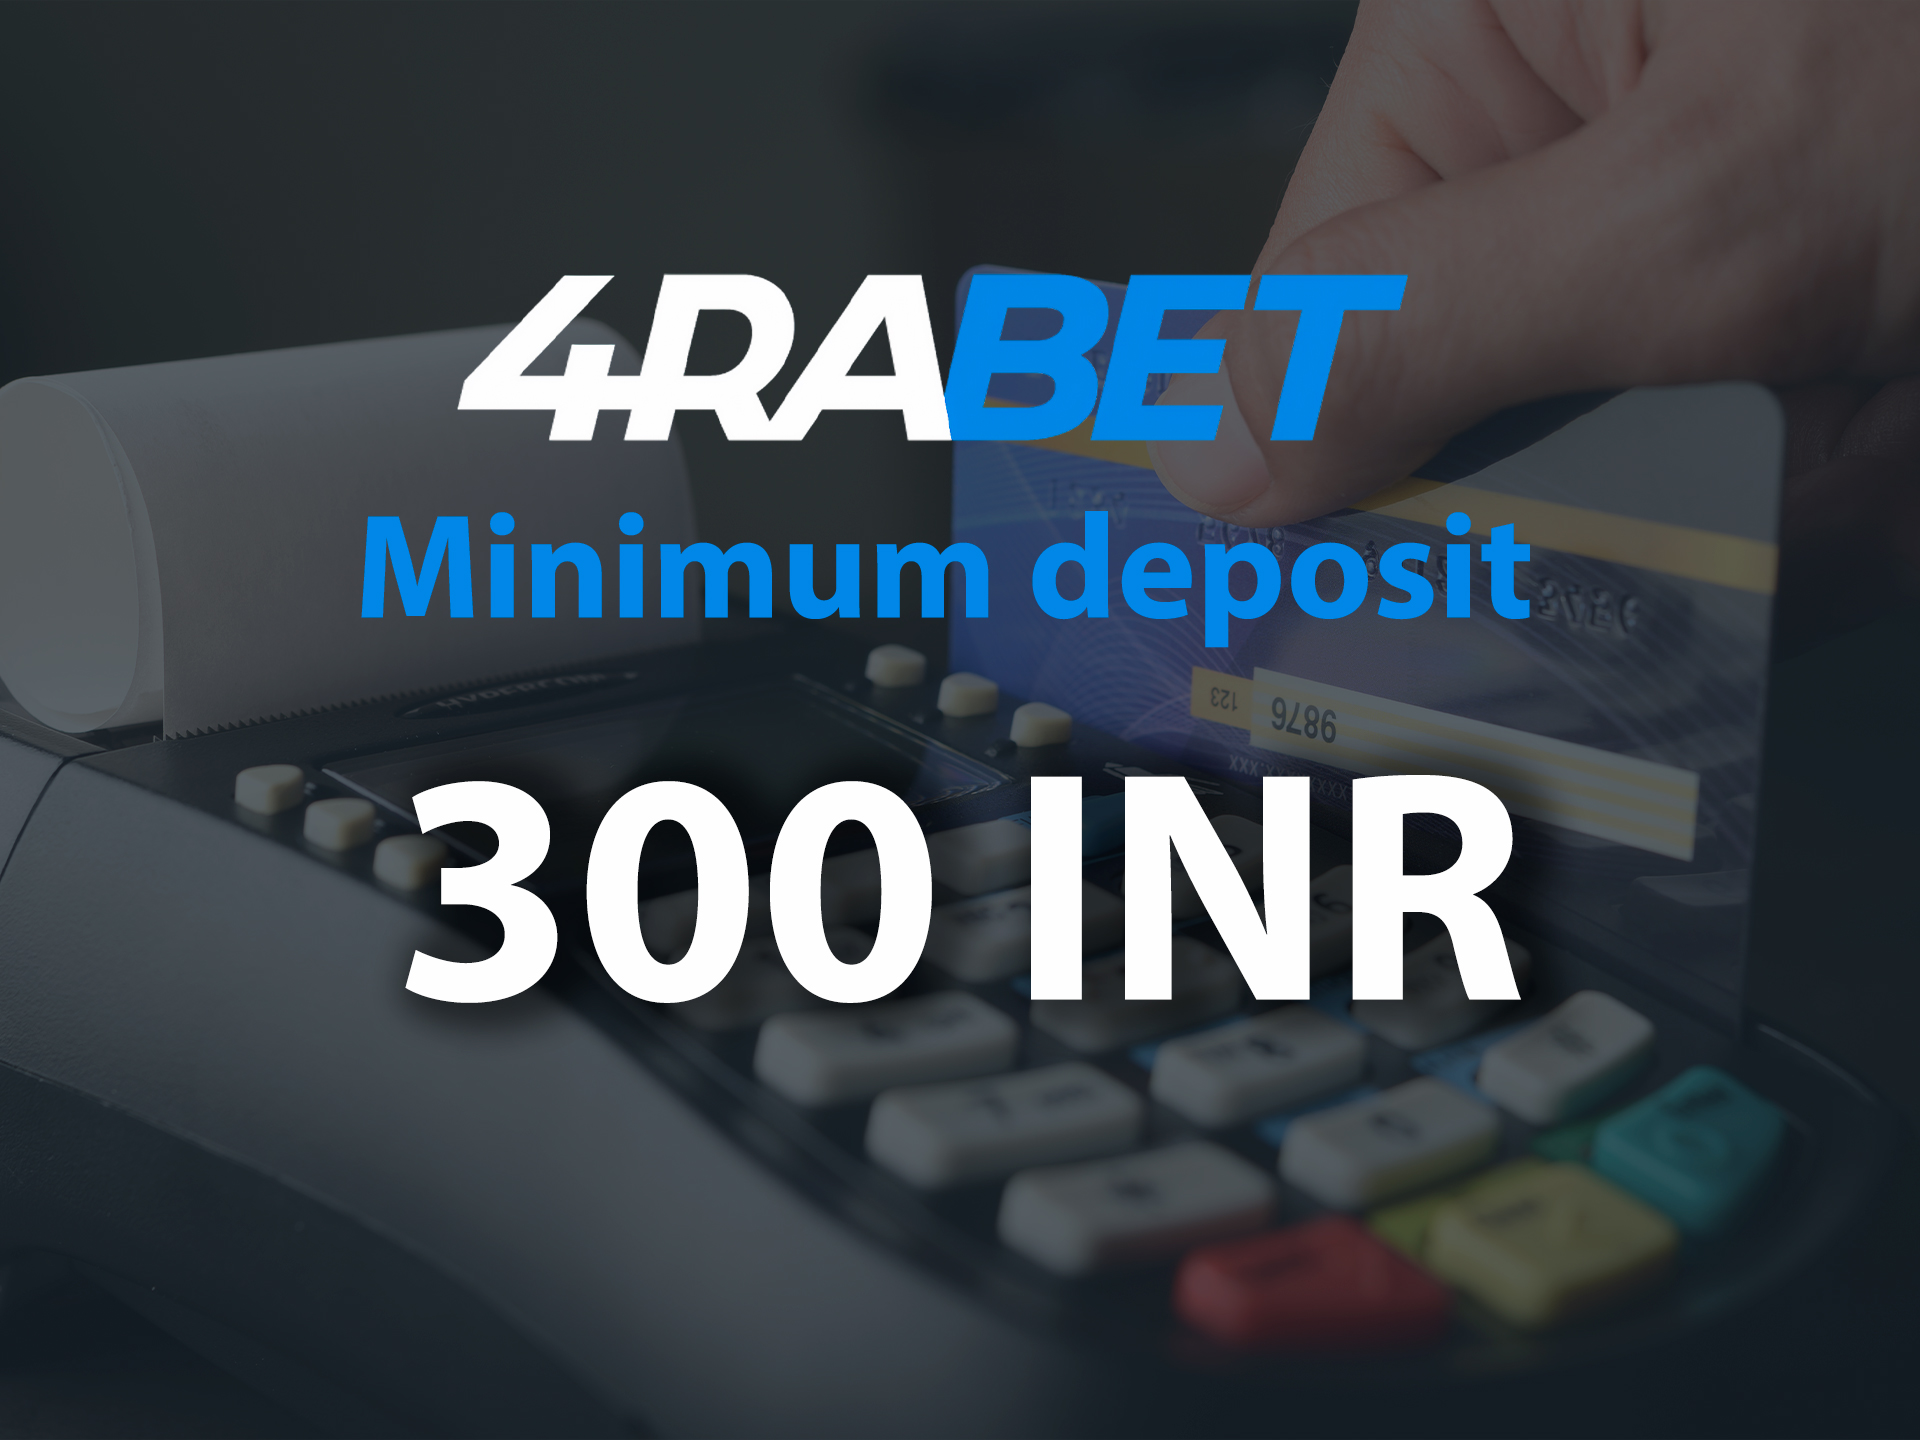 You should deposit at least 300 INR to get the welcome bonus.